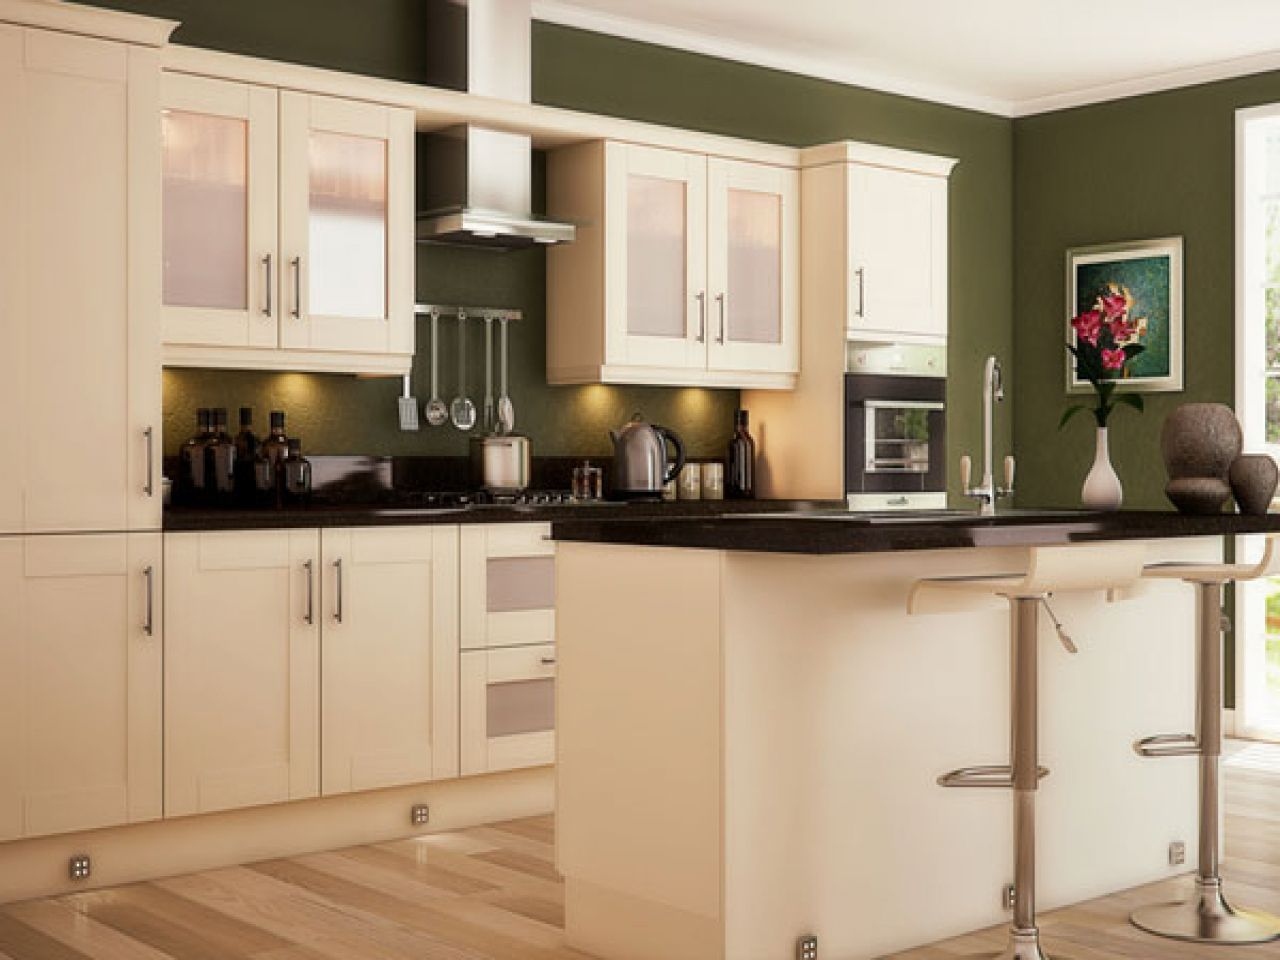 Olive Green Paint Color Kitchen Pantry Storage Ideas Check More At Http